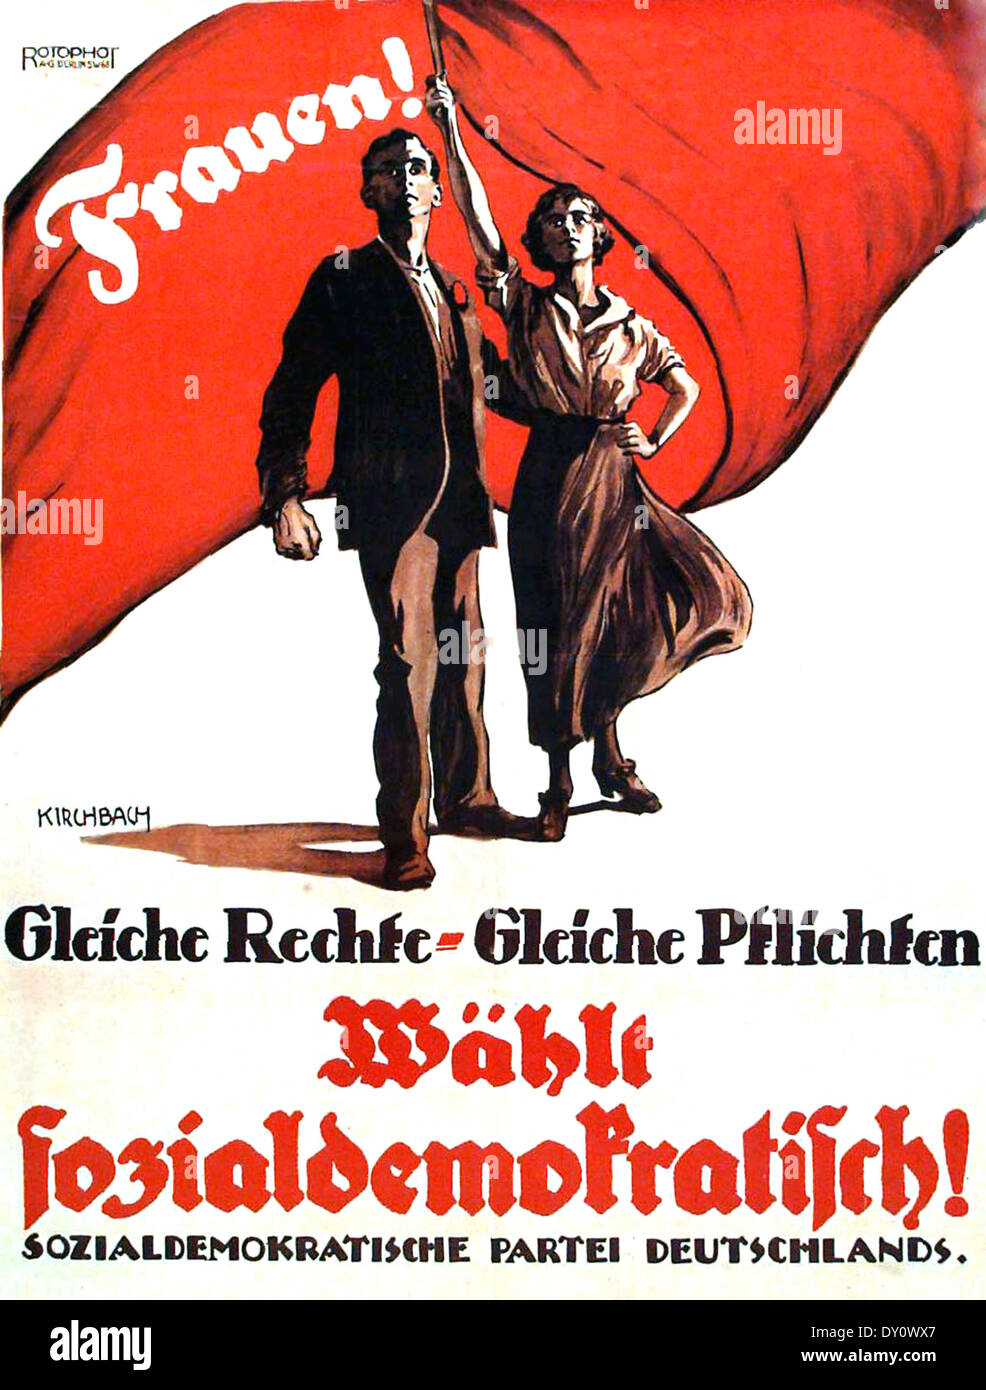 GERMAN SOCIAL DEMOCRATIC PARTY poster 1919 - Stock Image